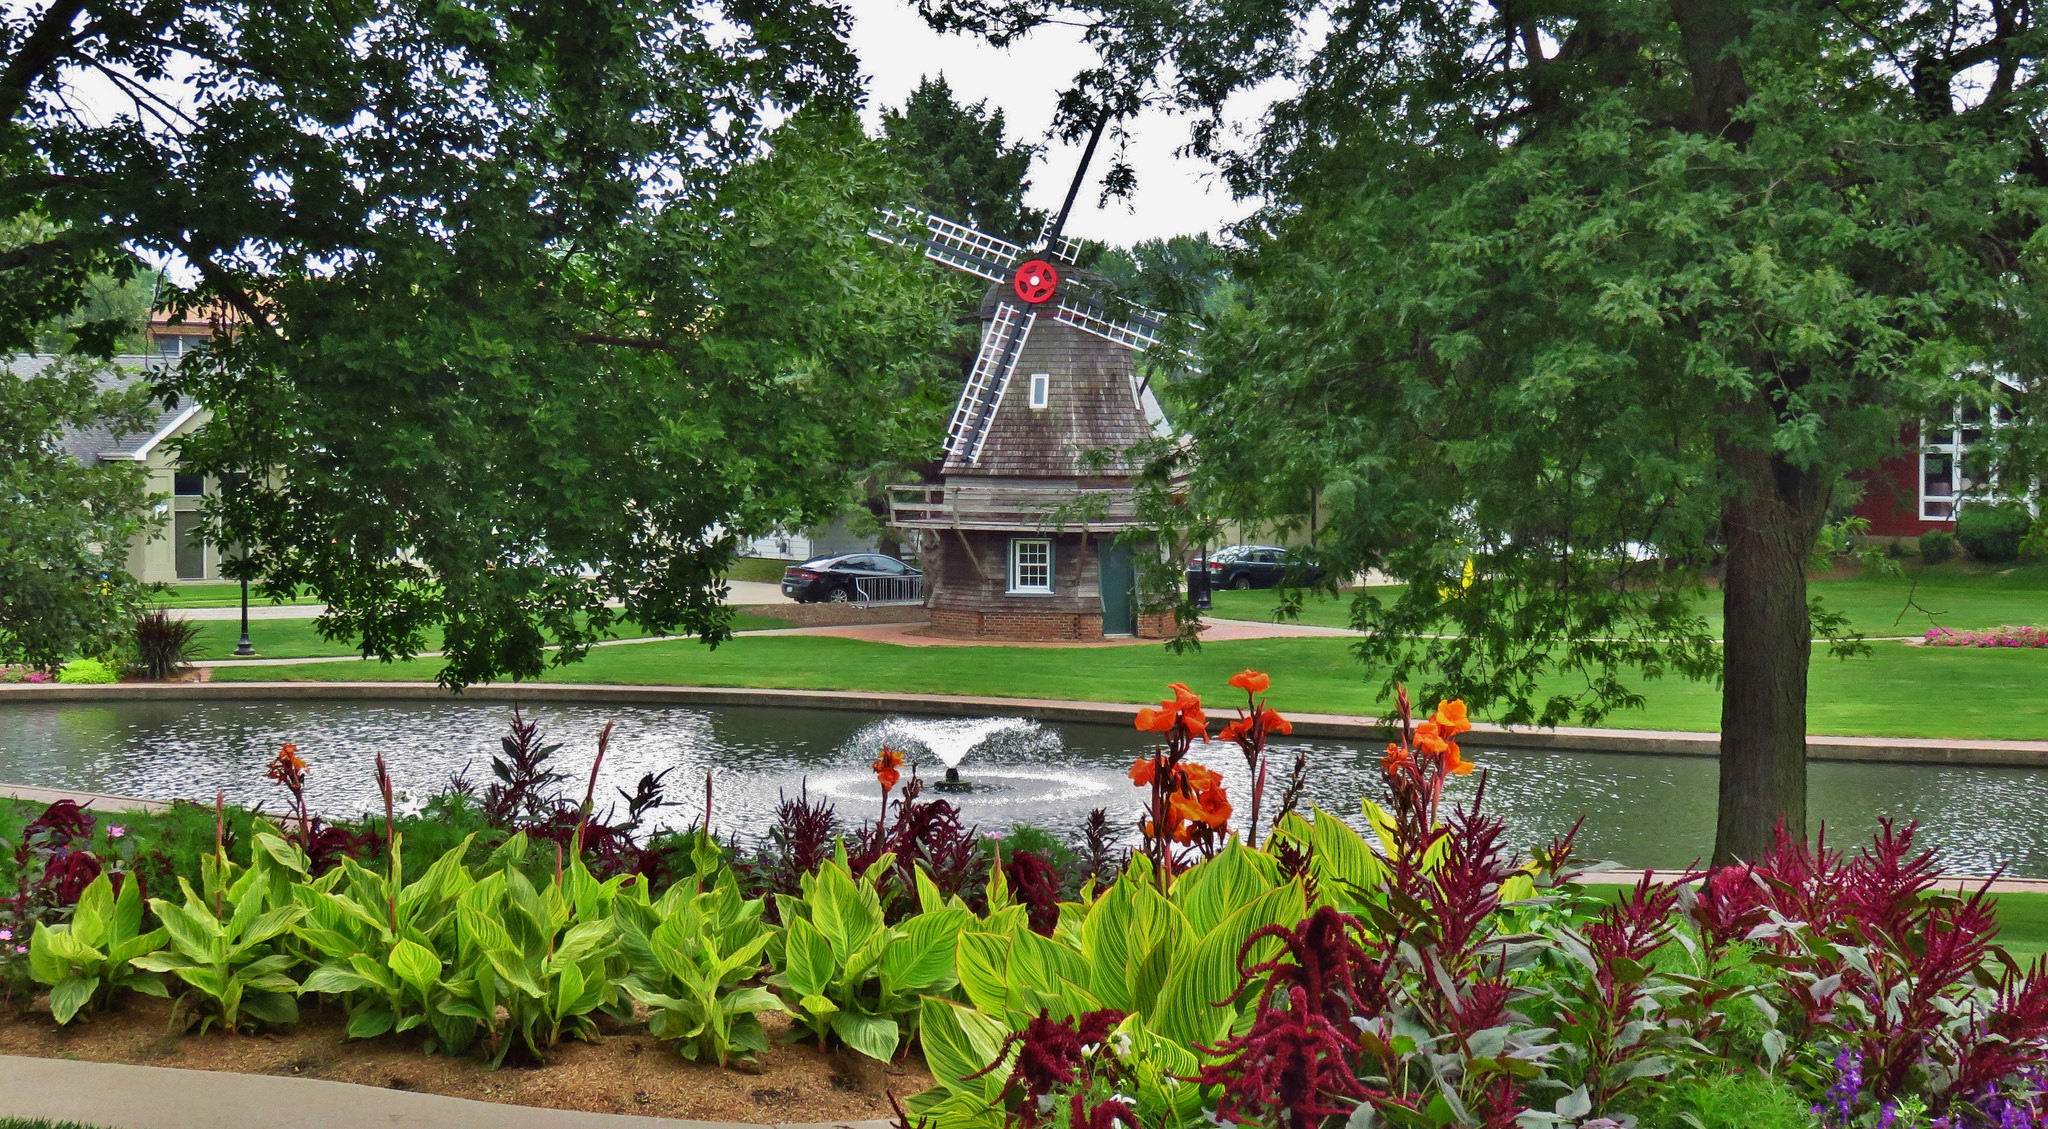 15 Best Towns In Iowa To Raise A Family